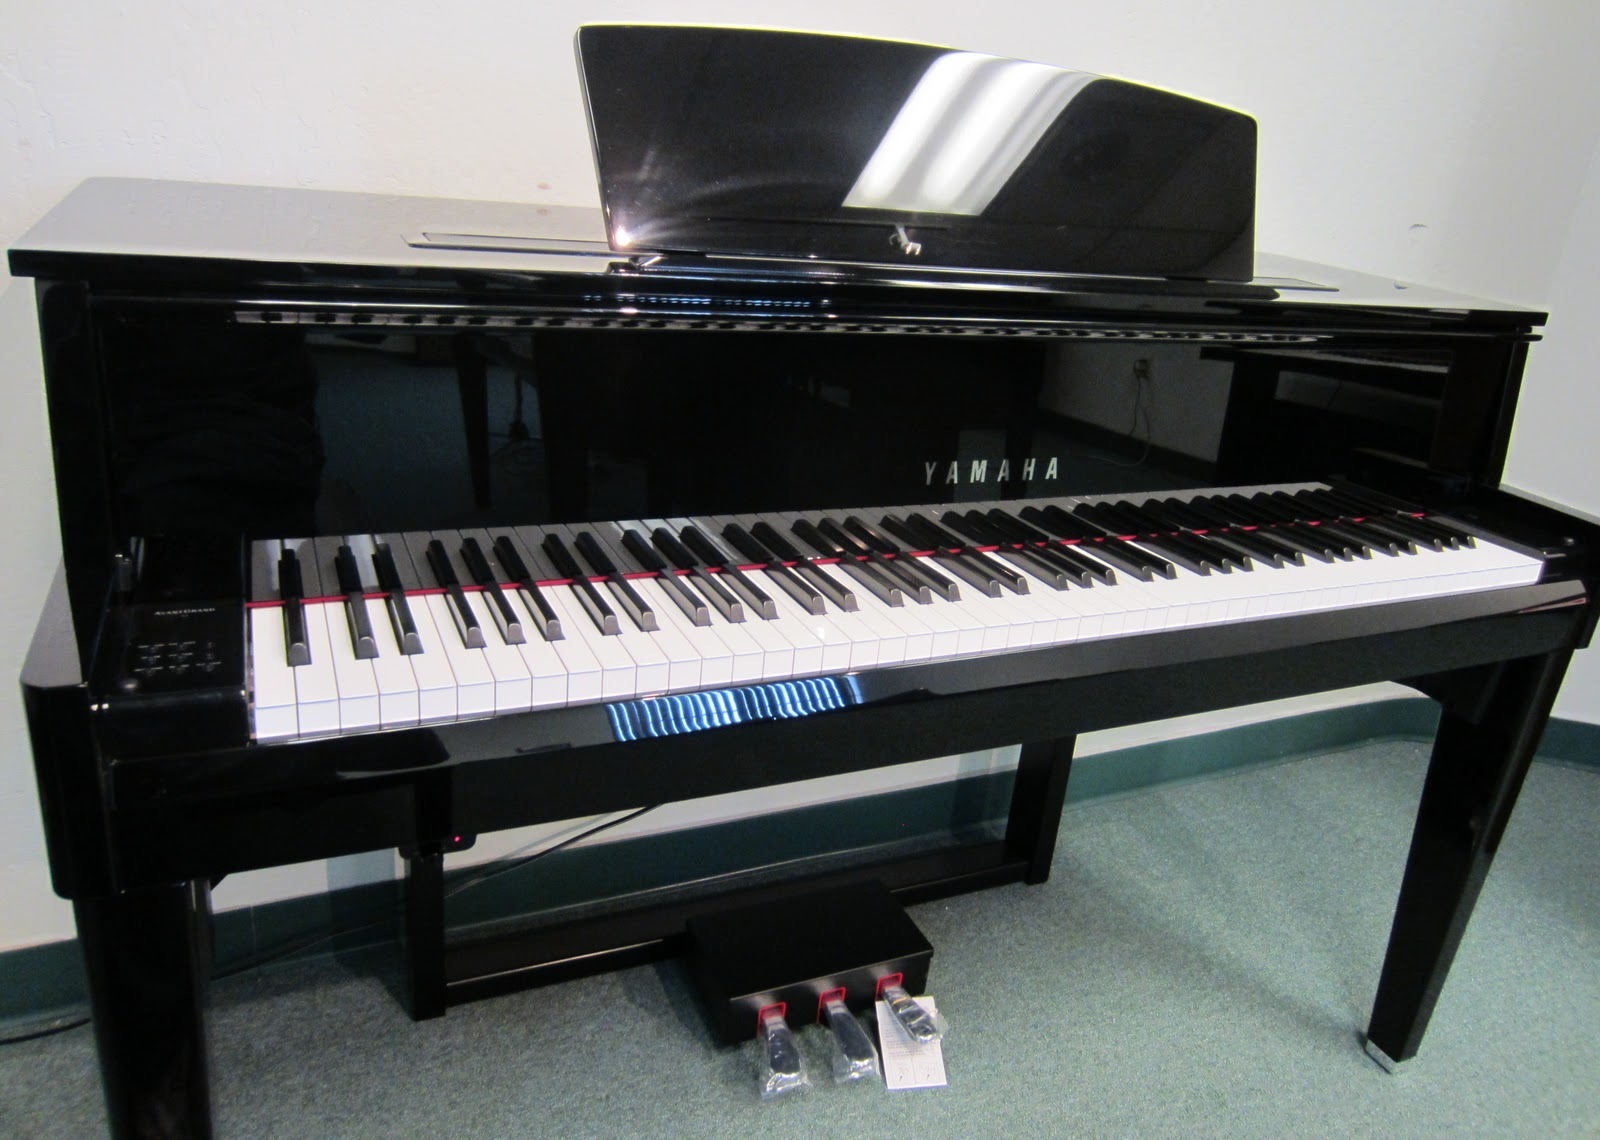 az piano reviews review yamaha avantgrand n1 n2 n3 digital pianos awesome but pricey. Black Bedroom Furniture Sets. Home Design Ideas